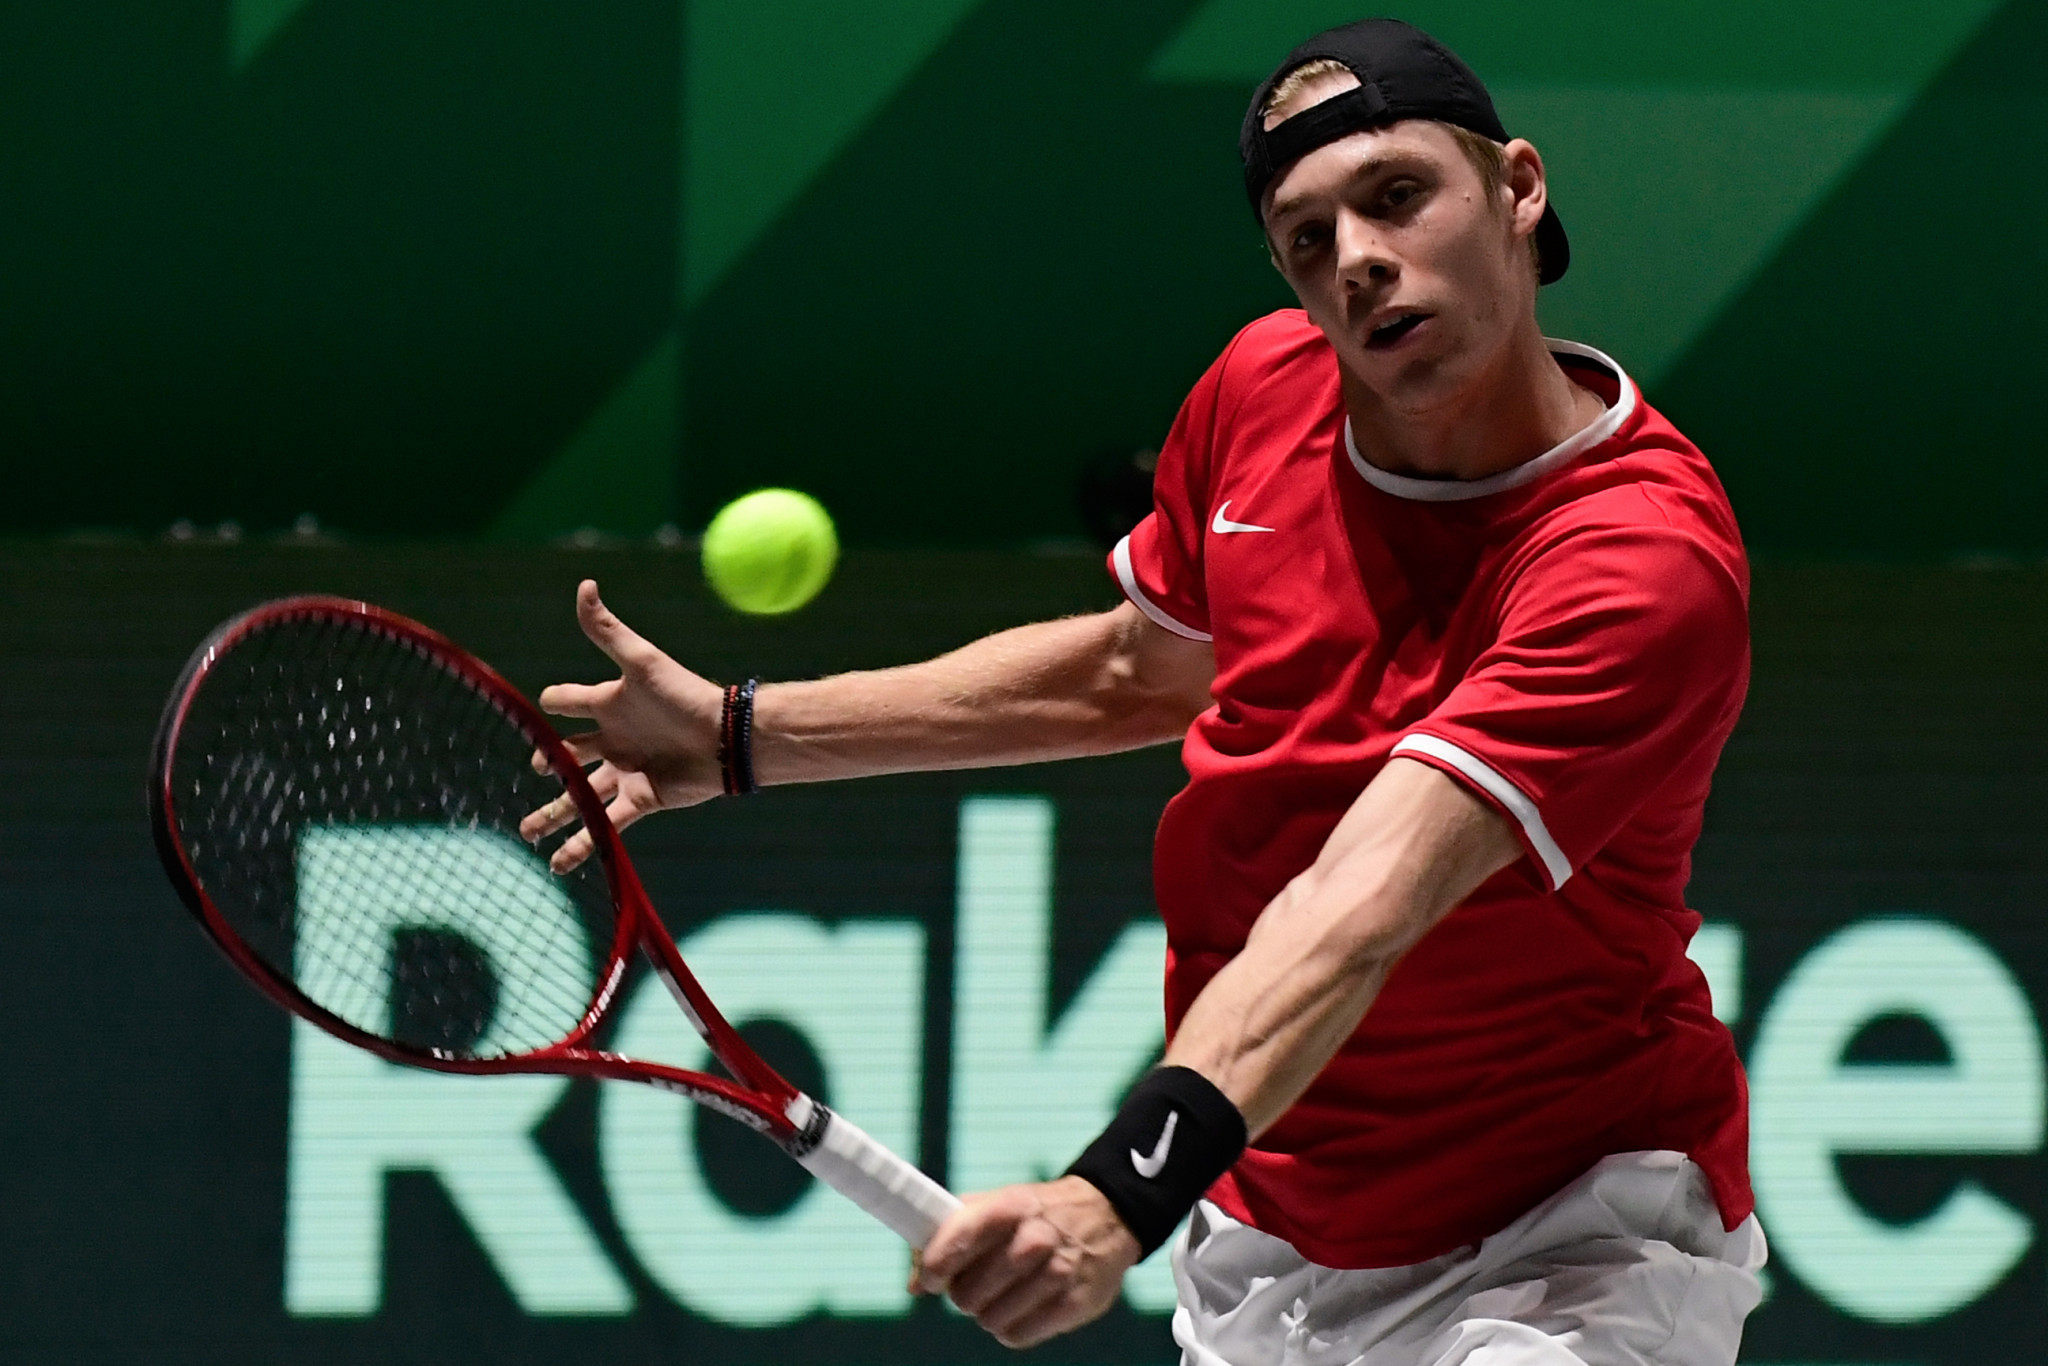 Canada beat the US to reach the quarter-finals of the Davis Cup in Madrid ©Getty Images